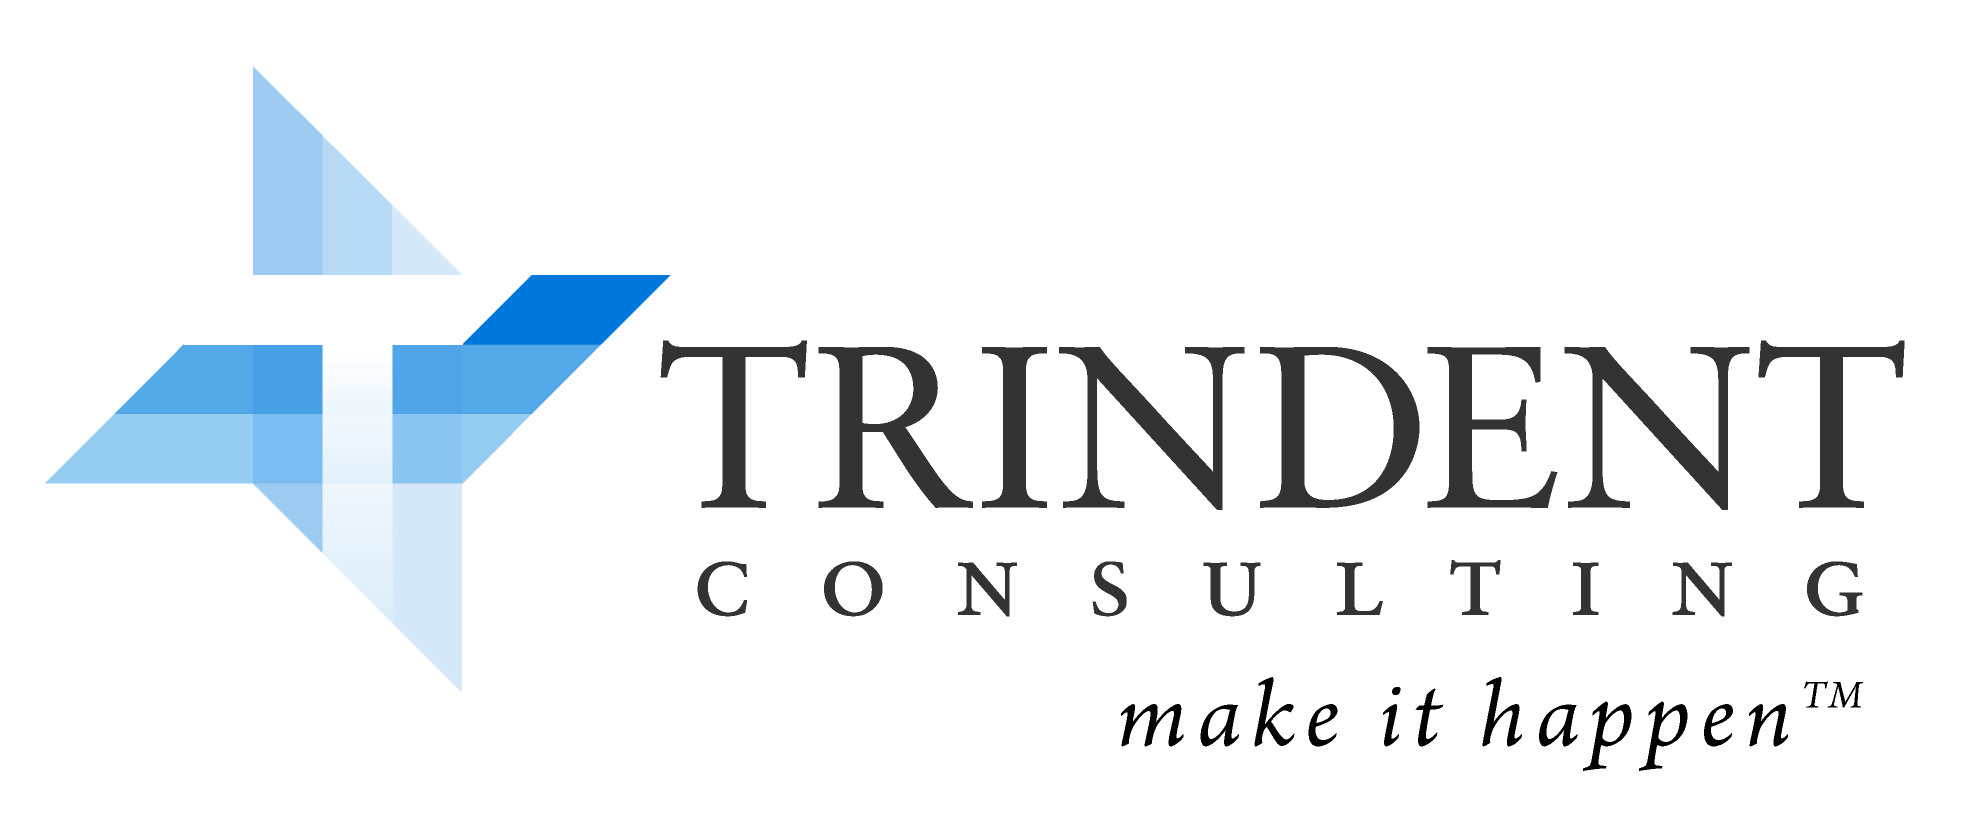 The 2019 Fastest Growing Firms: Trindent Consulting